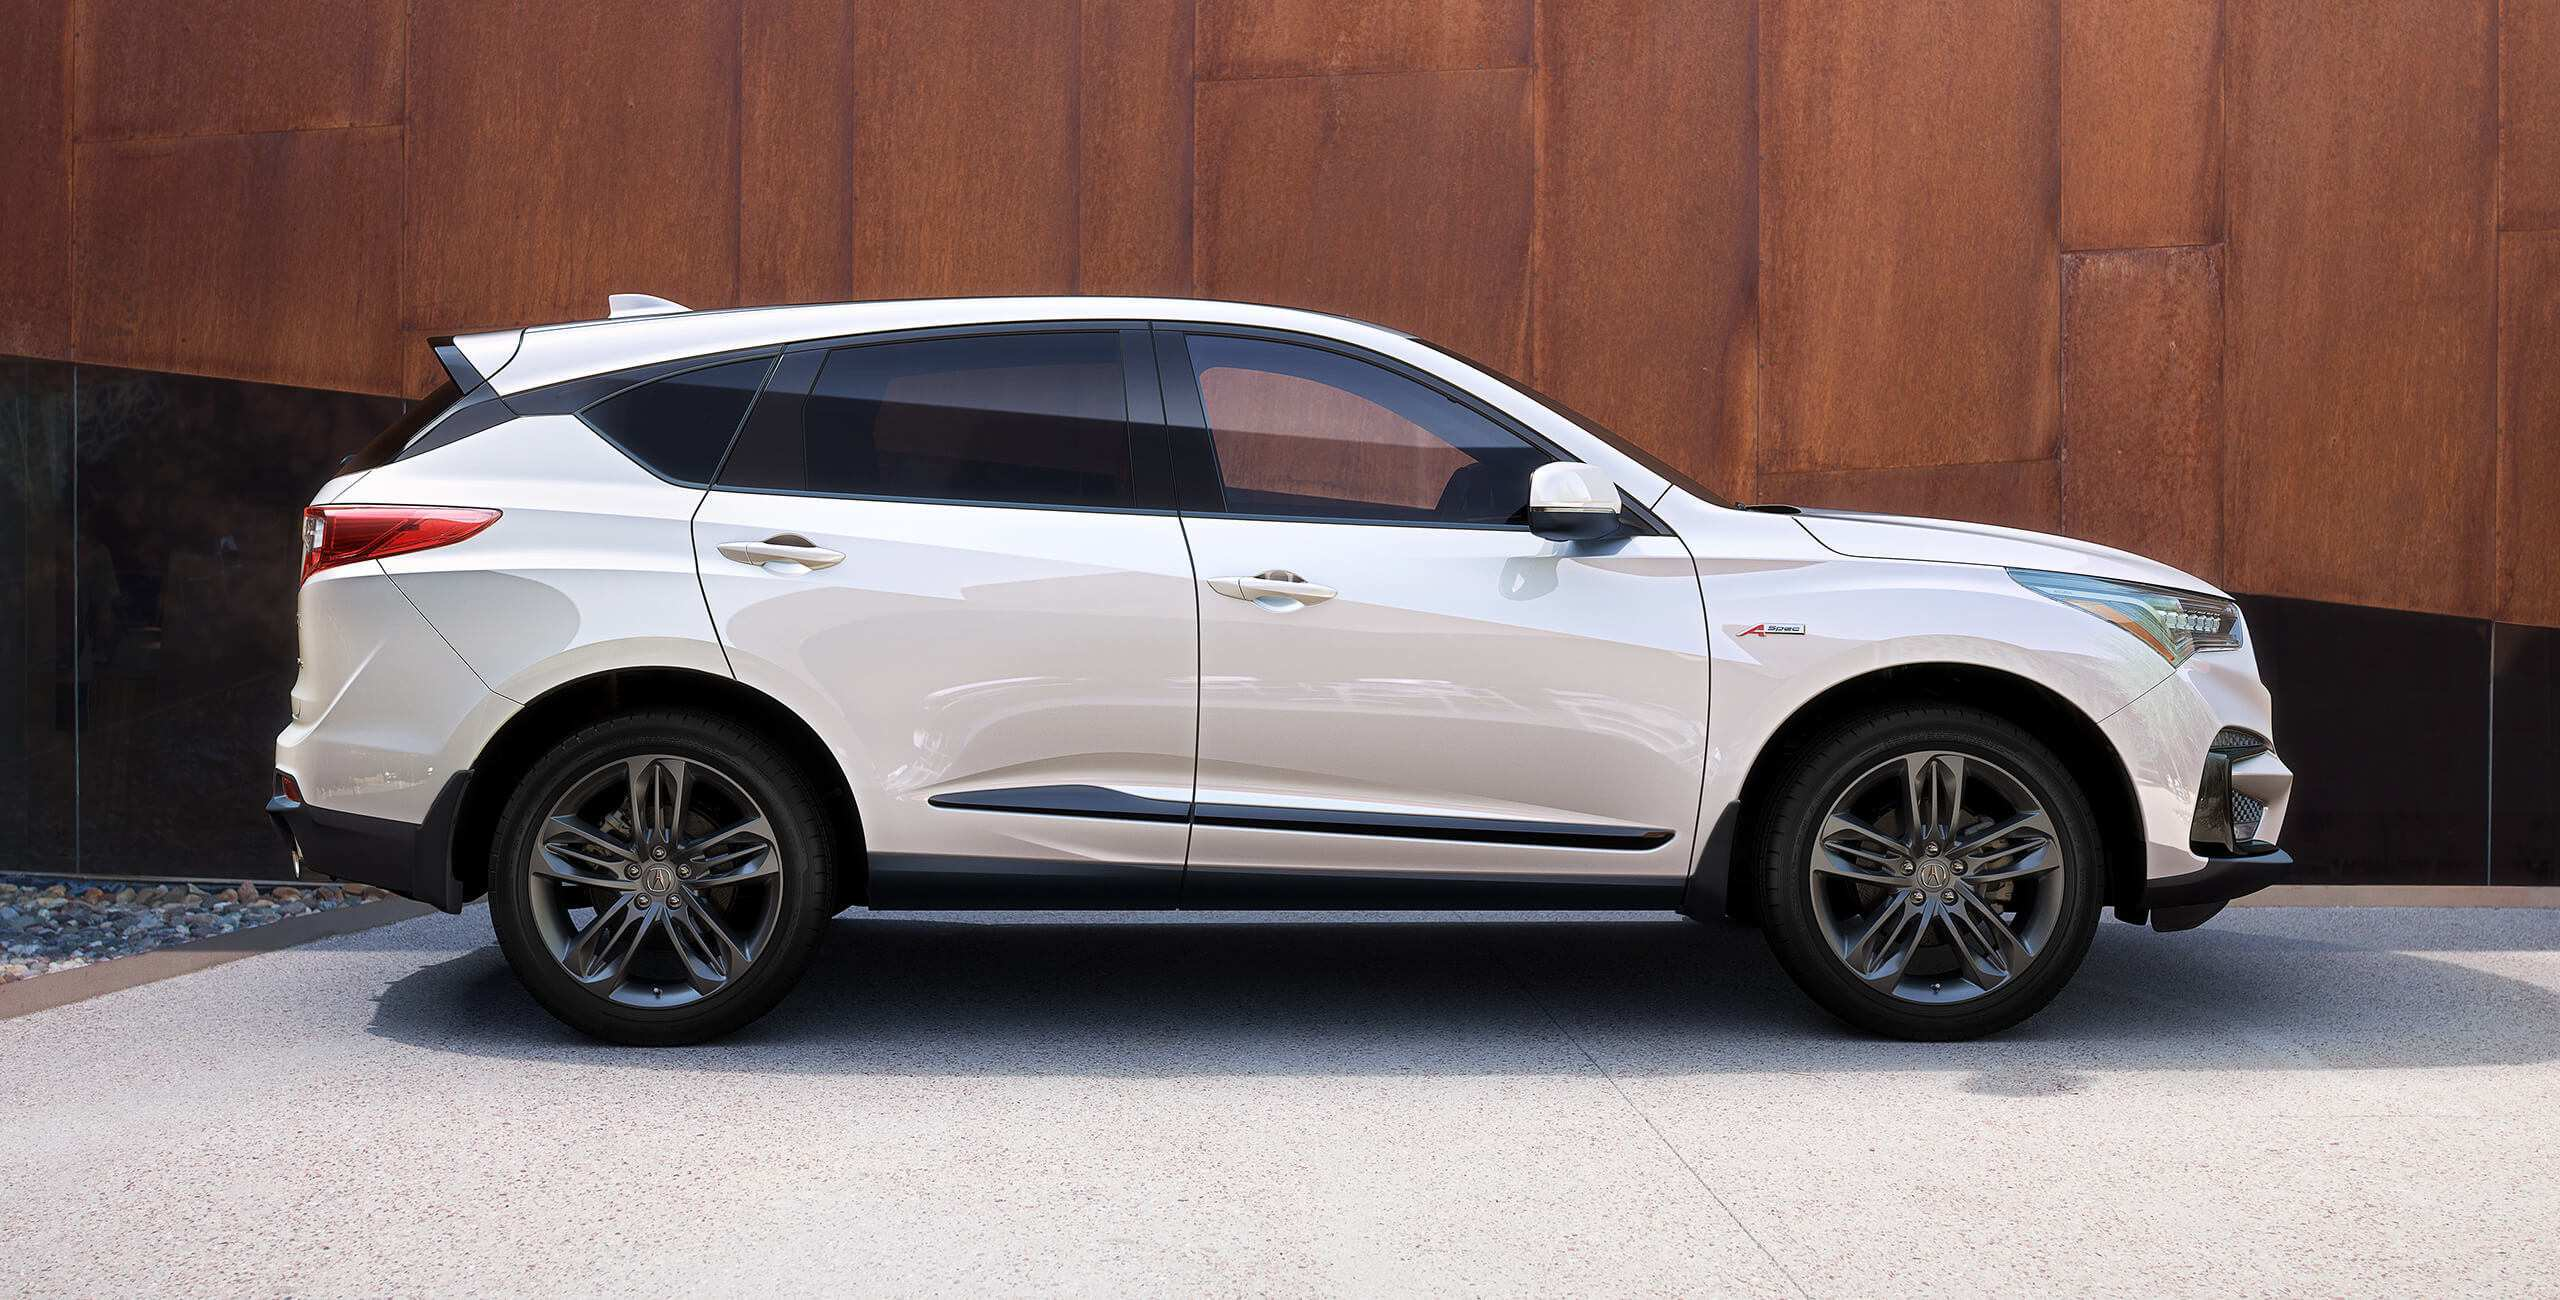 52 The Acura Rdx 2020 Release Date Concept by Acura Rdx 2020 Release Date